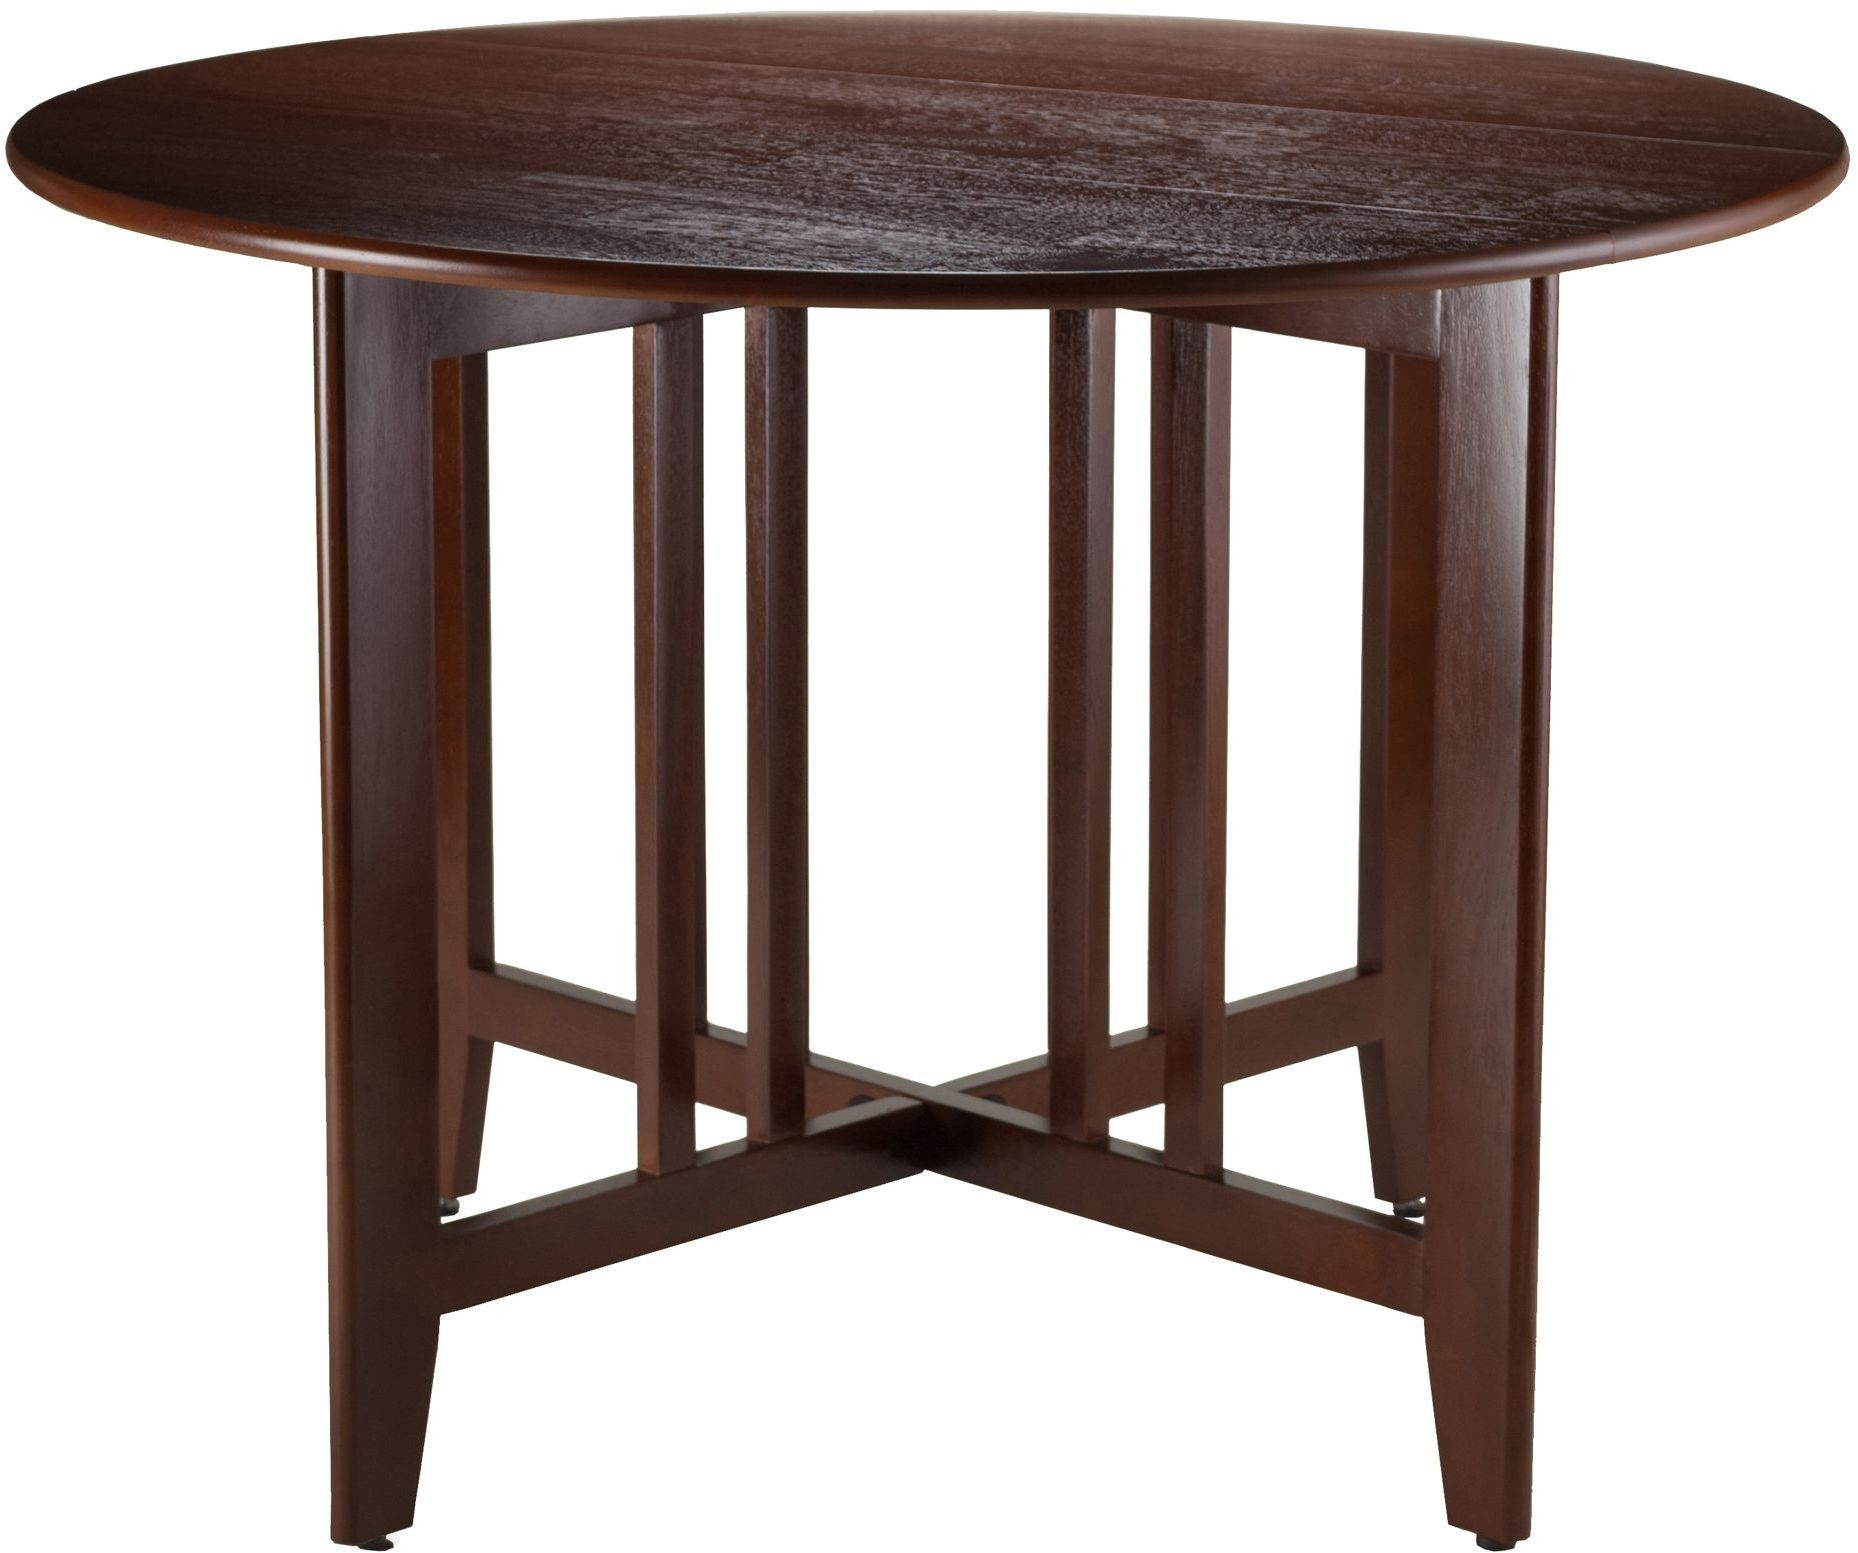 Alamo 42 double drop leaf round dining table 94142 winsome for 42 dining table with leaf